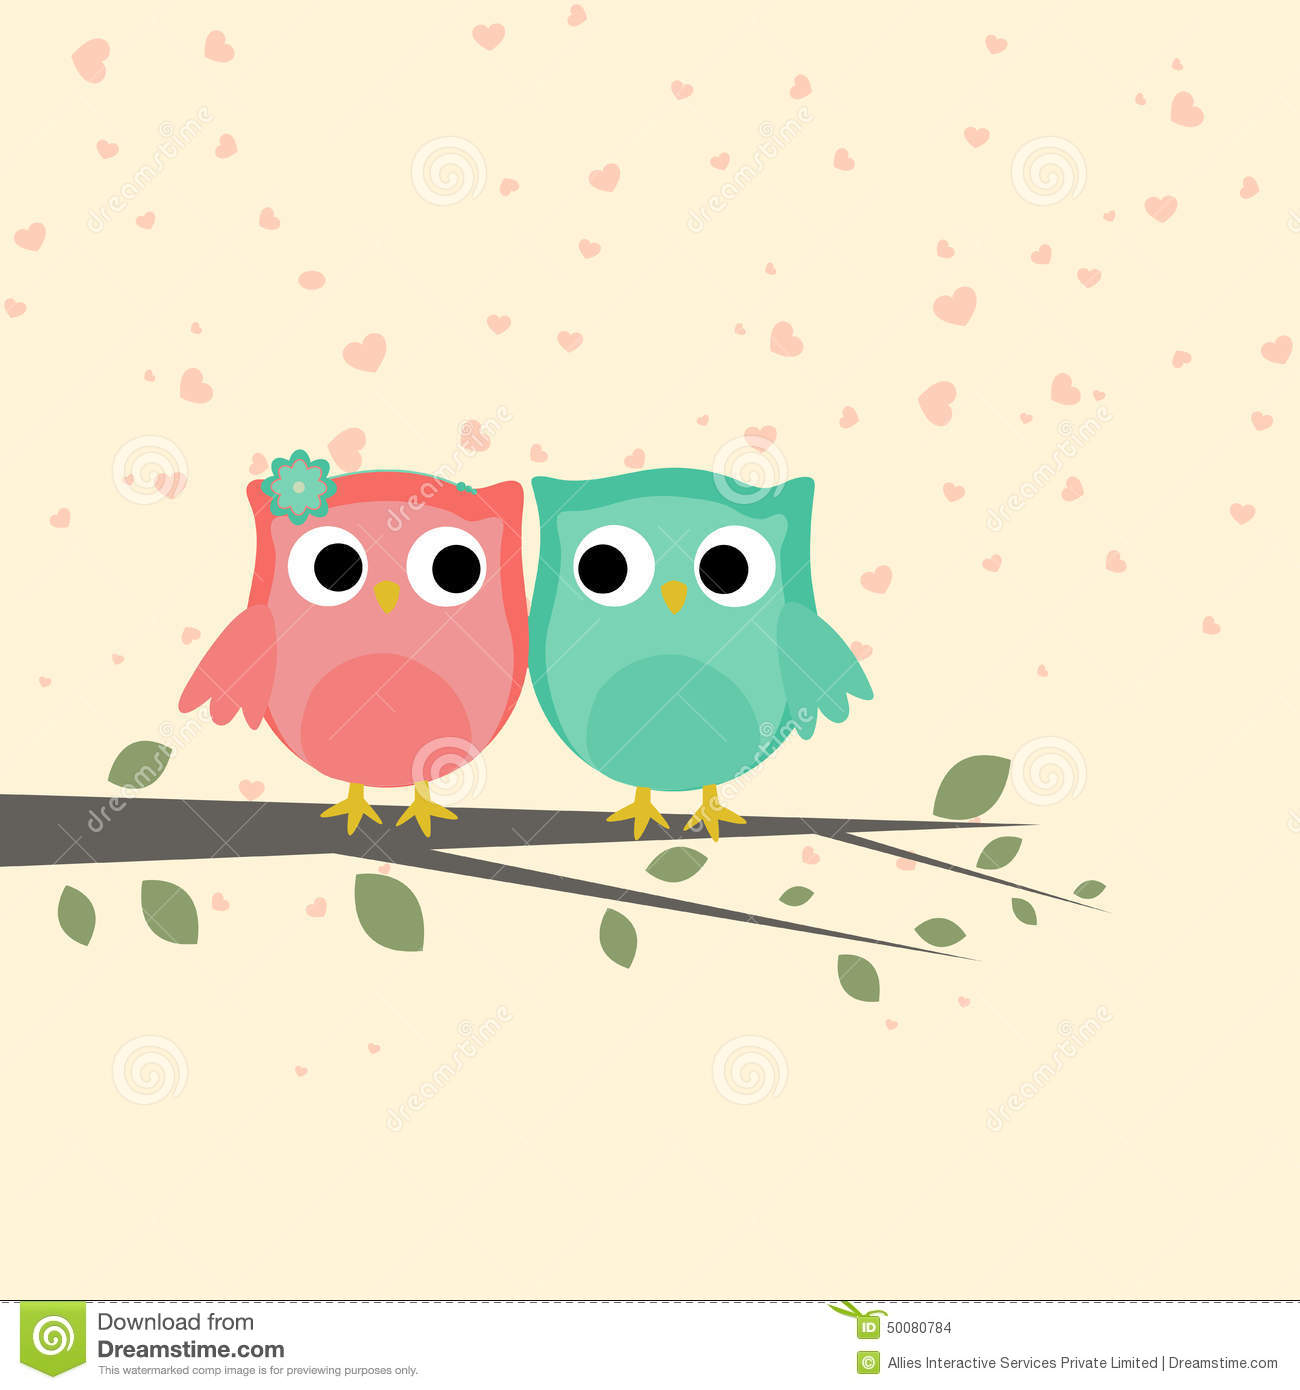 Love Birds couple Wallpaper : cute Love Bird couple For Valentines Day. Stock Illustration - Image: 50080784